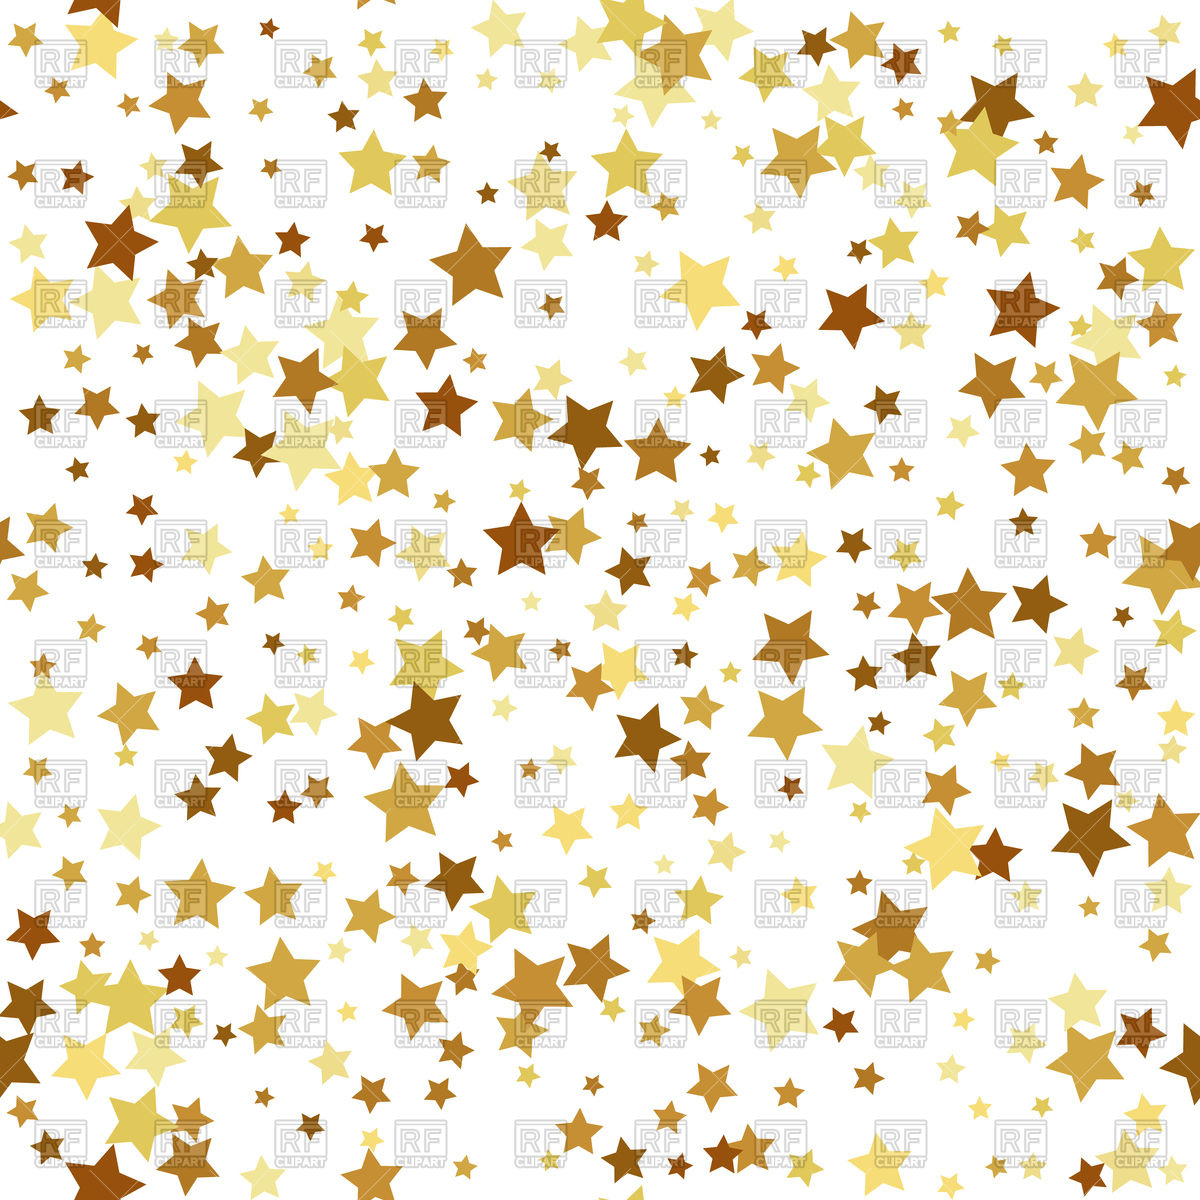 Free clipart background patterns banner royalty free Free star background clipart - ClipartFest banner royalty free